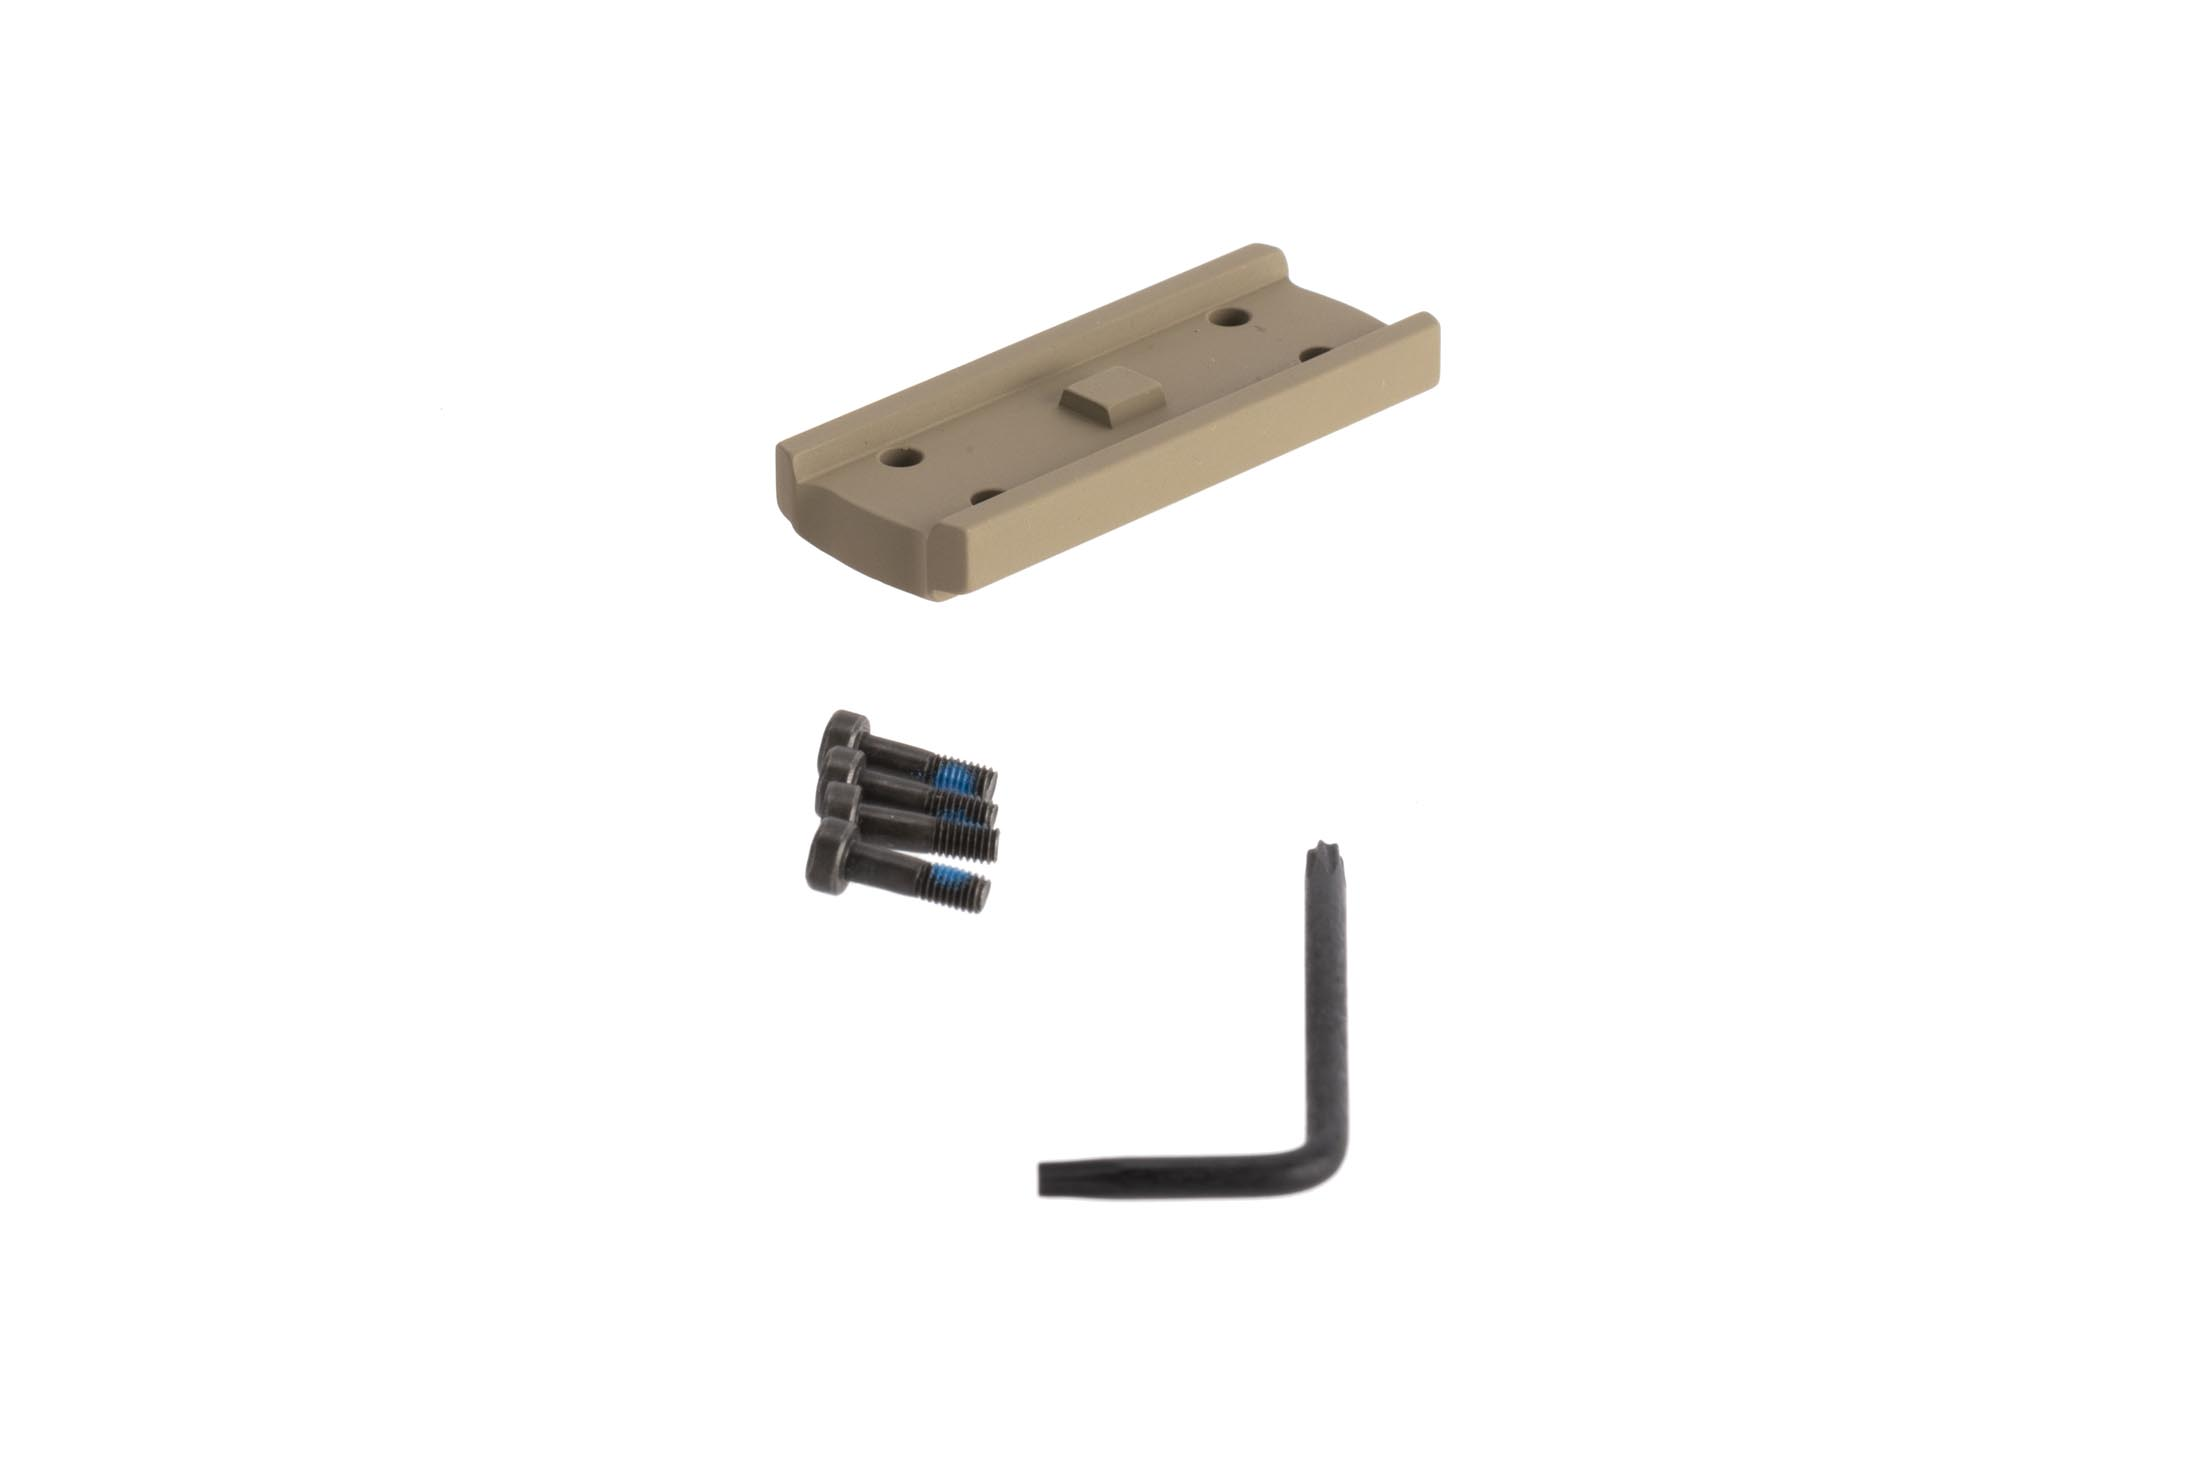 Primary Arms high height spacer with FDE anodized finish for the compact 1X prism scope includes mounting screws and torx wrench for installation